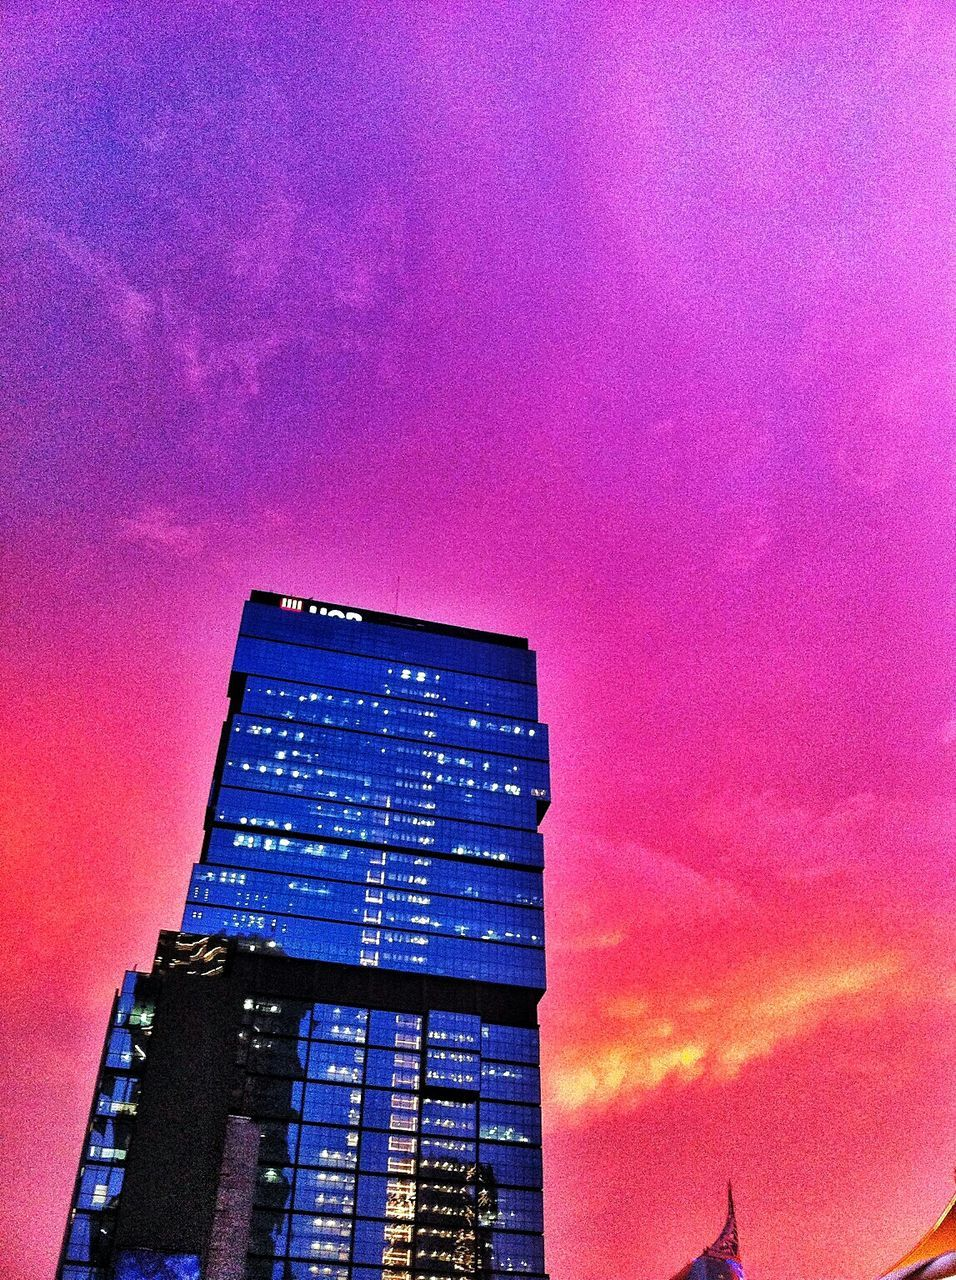 architecture, built structure, purple, building exterior, low angle view, sunset, pink color, modern, skyscraper, sky, no people, illuminated, outdoors, city, day